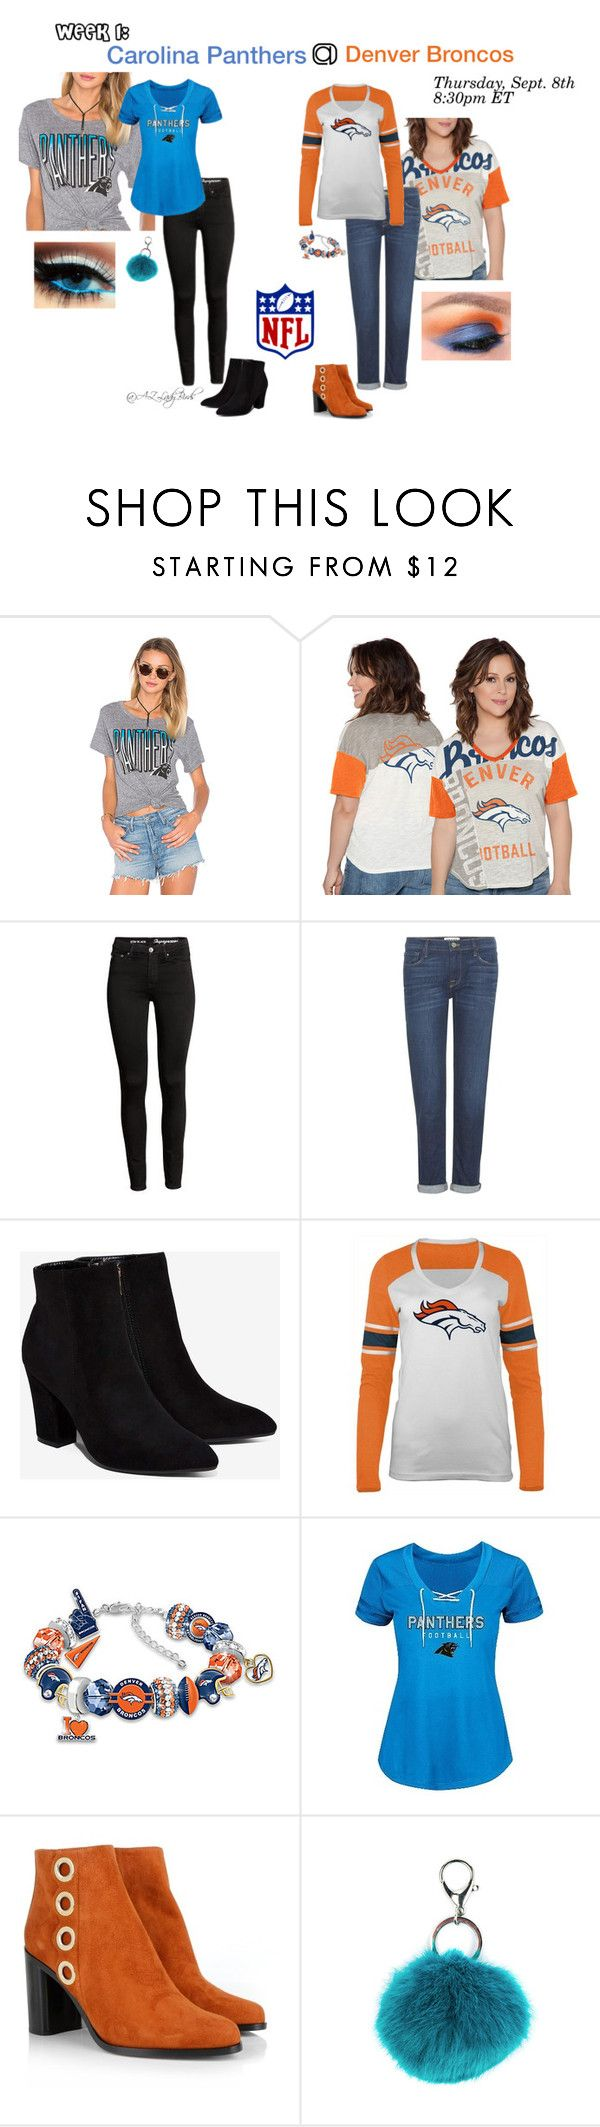 NFL Week 1: CAR @ DEN by arizonaladybirds on Polyvore featuring Junk Food Clothing, 5th & Ocean, Frame Denim, Billini, Chloé, The Bradford Exchange, Carole and Touch by Alyssa Milano